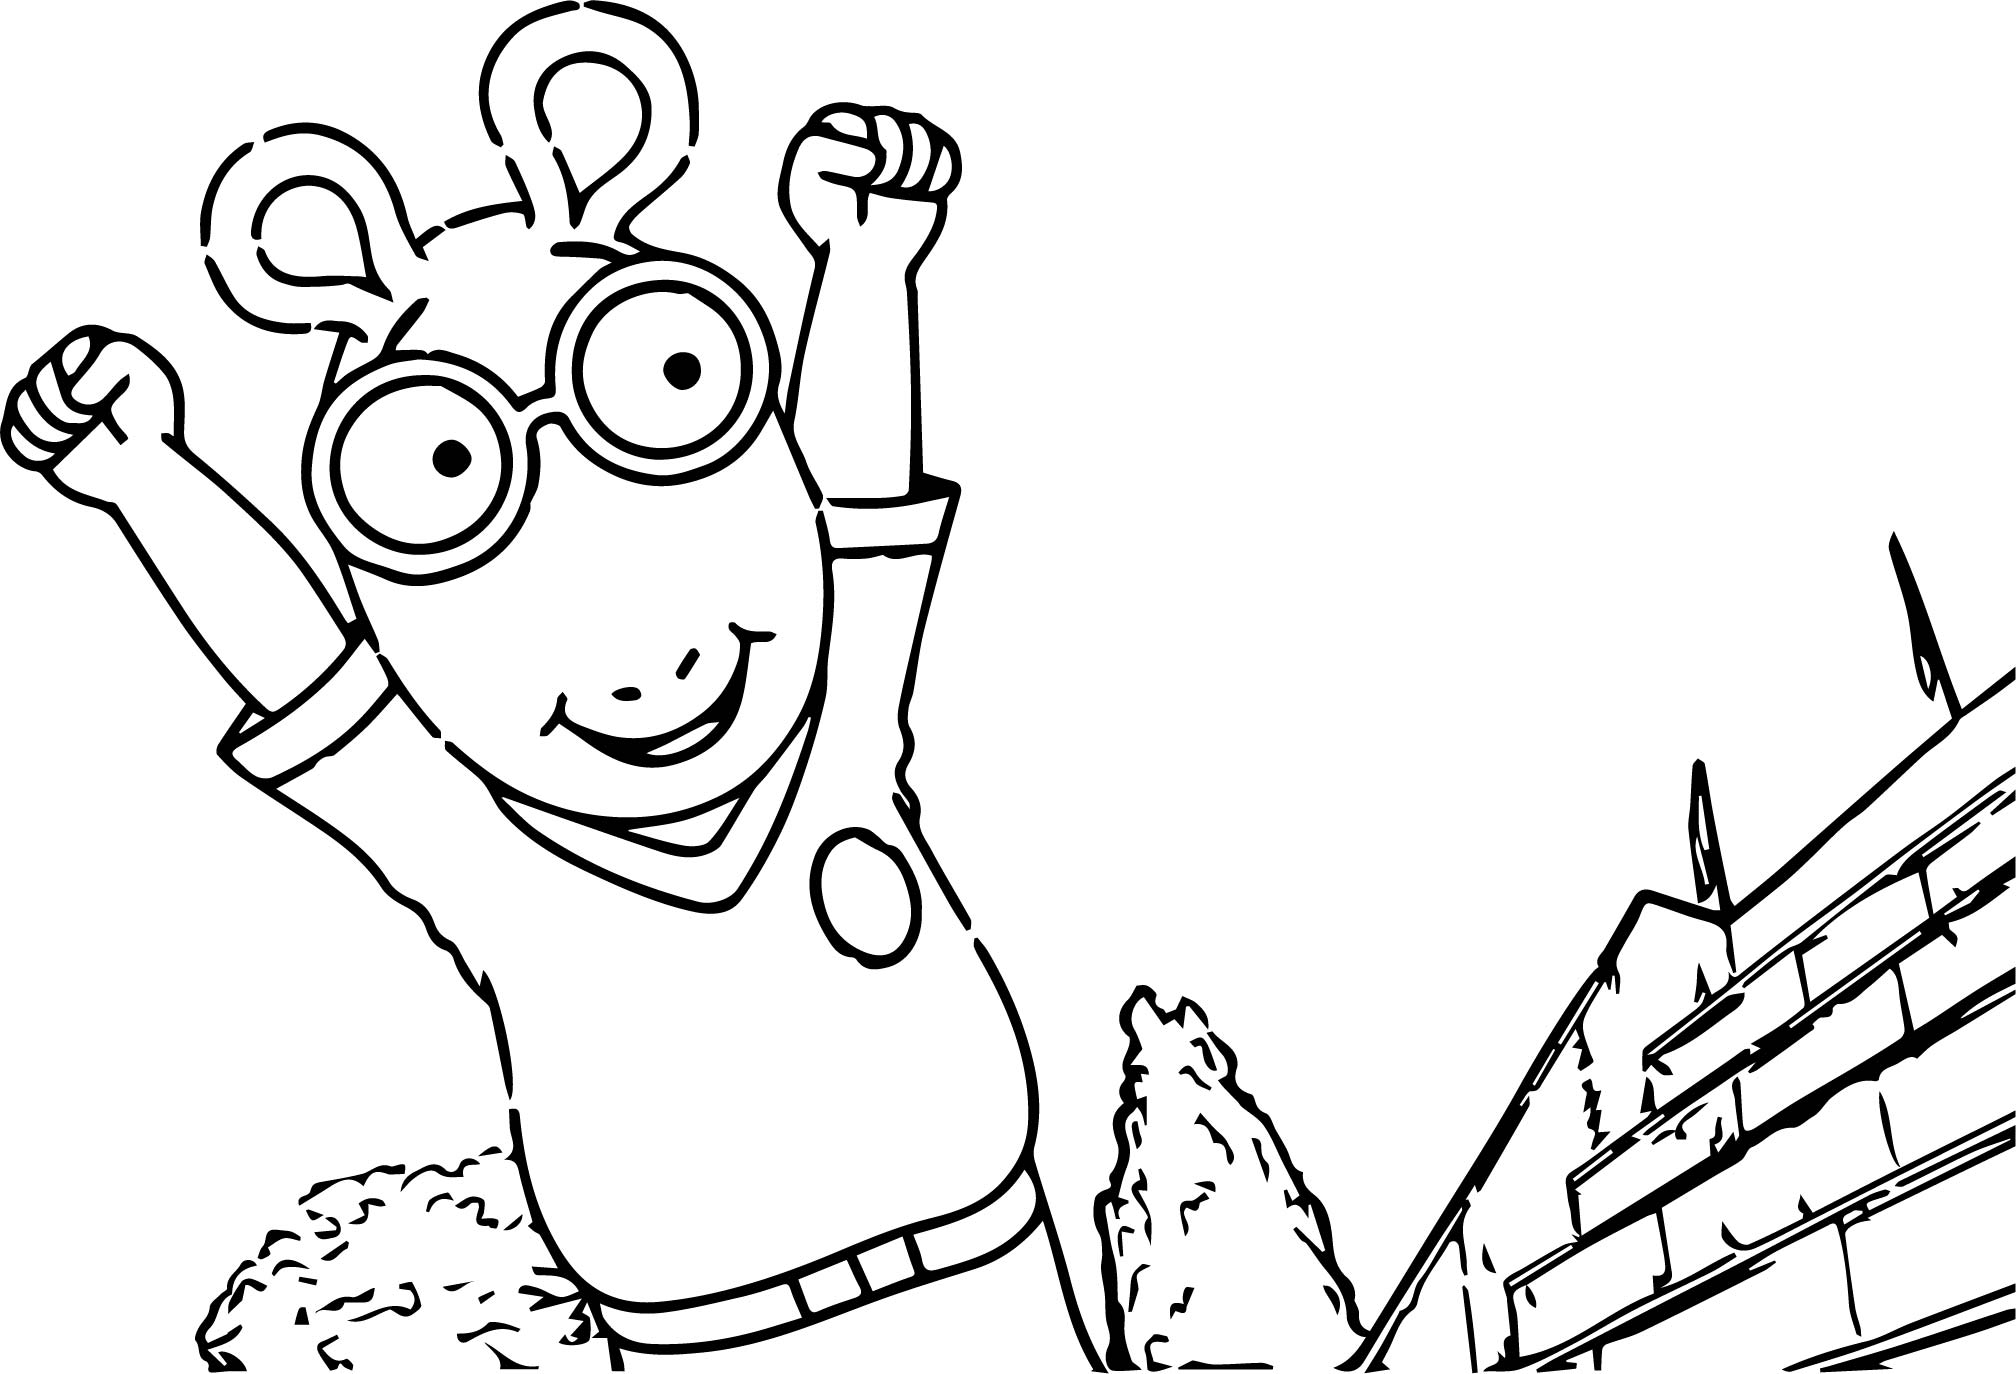 Story Secures International Arthur Coloring Page